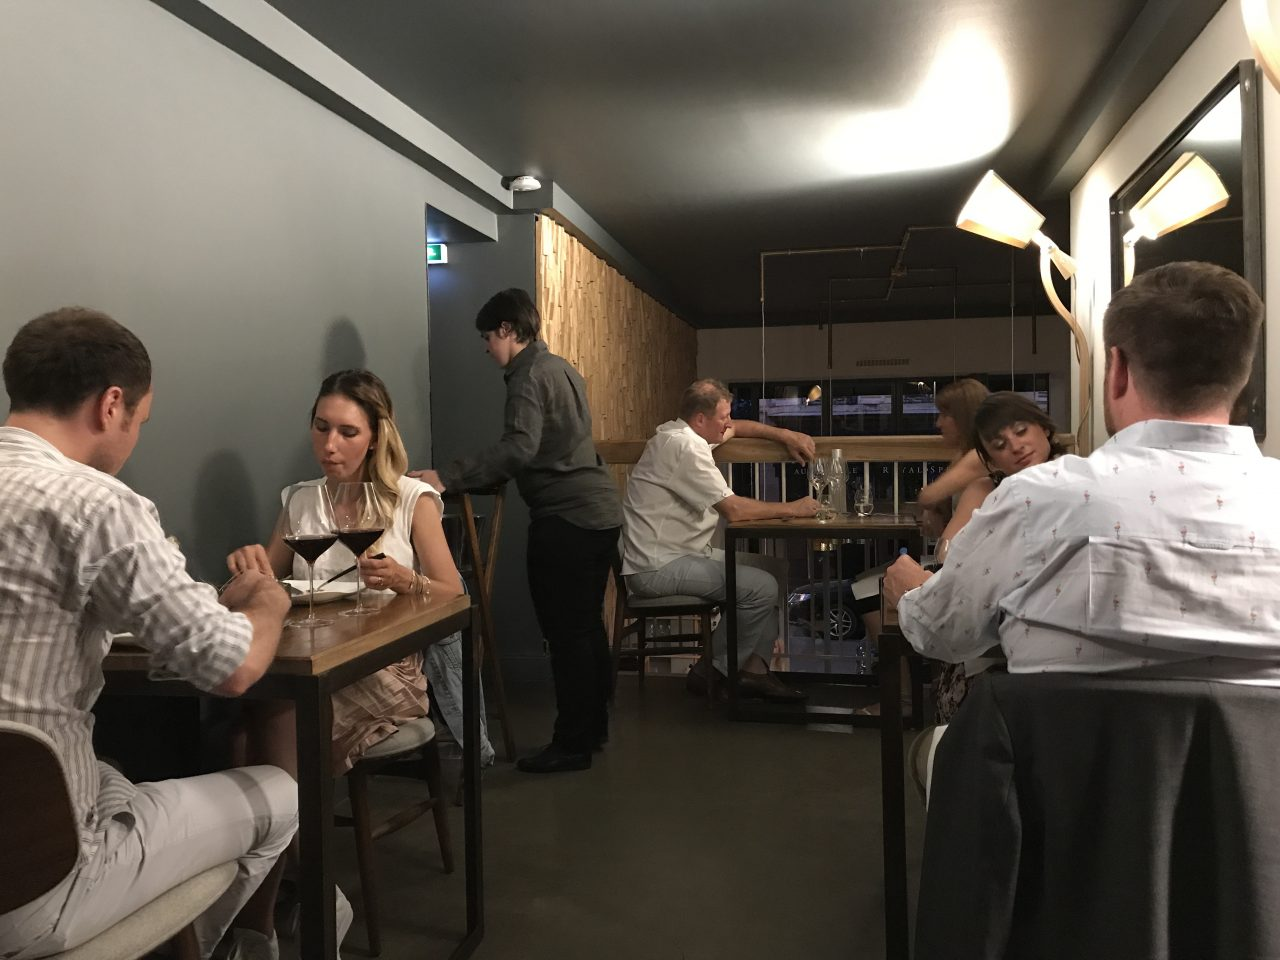 Restaurant David Toutain in Paris | parisbymouth.com